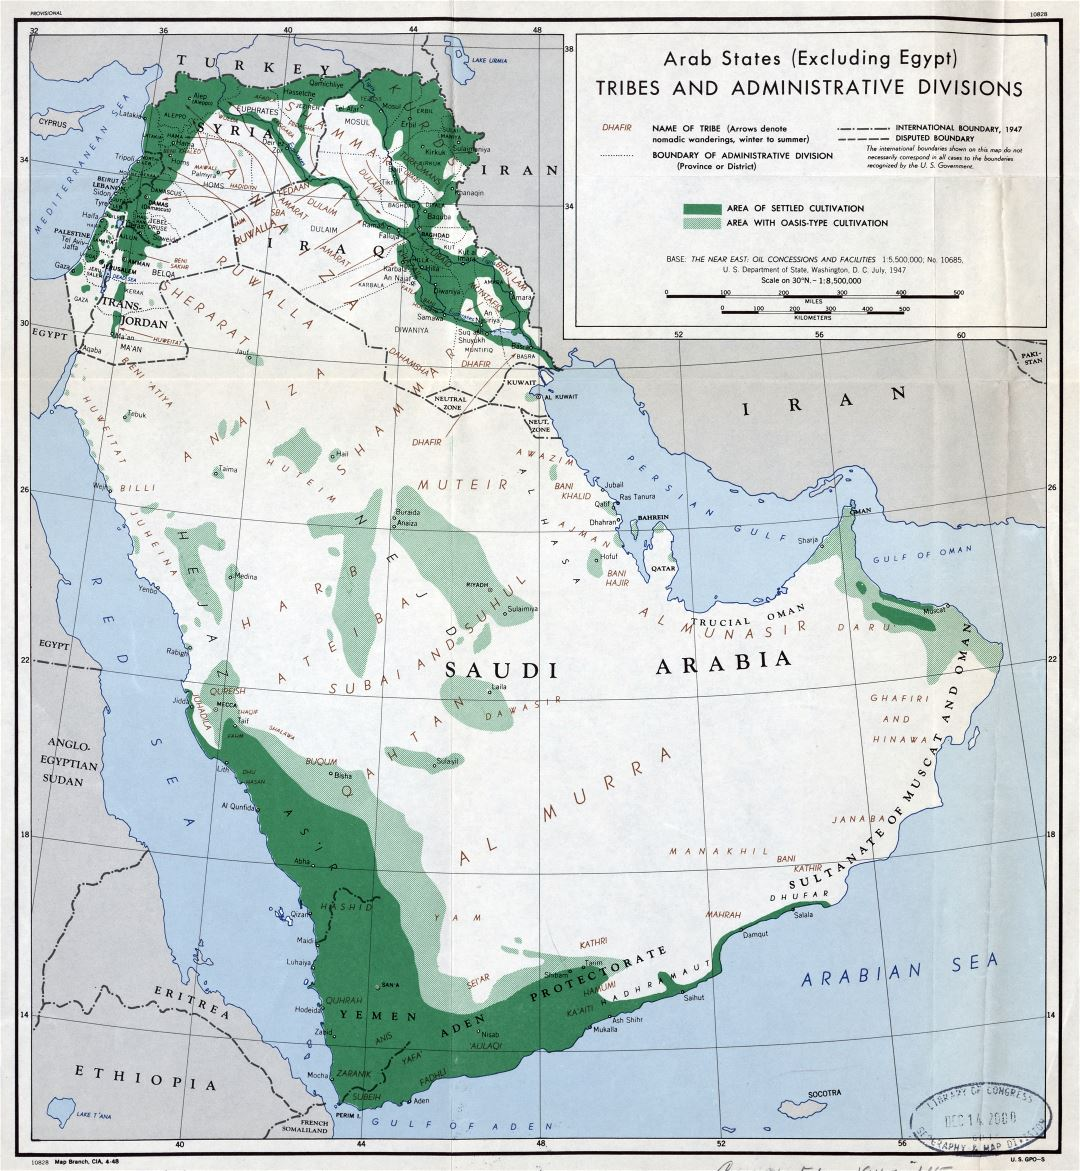 Large detailed Arab States (Excluding Egypt) tribes and administrative divisions map - 1947